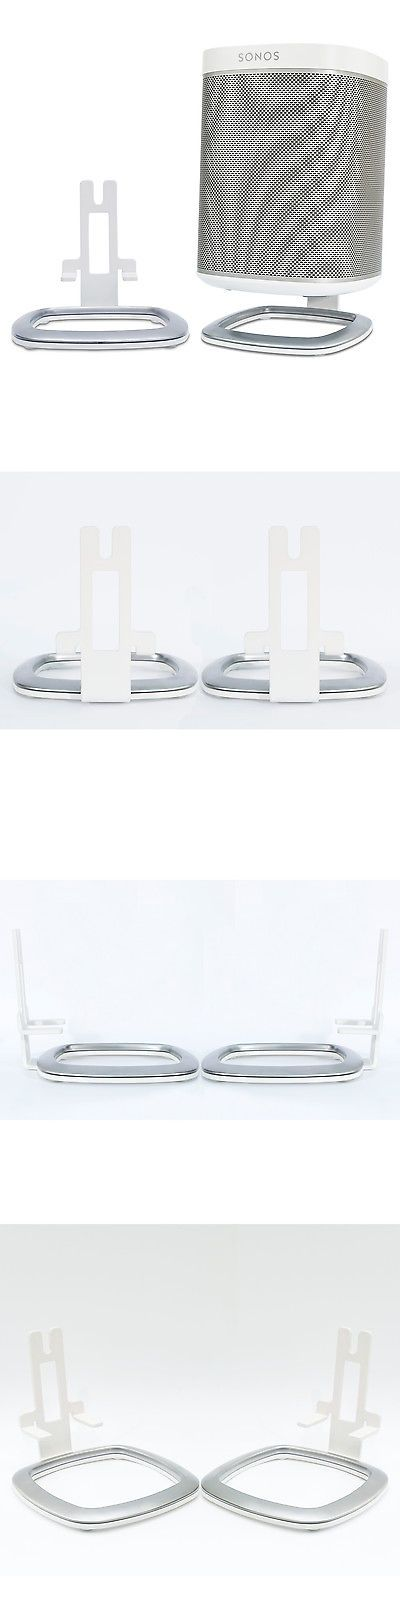 Speaker Mounts and Stands: Flexson Desk Stands For Sonos Play:1 Wireless Speaker - Pair (White) -> BUY IT NOW ONLY: $49.0 on eBay!